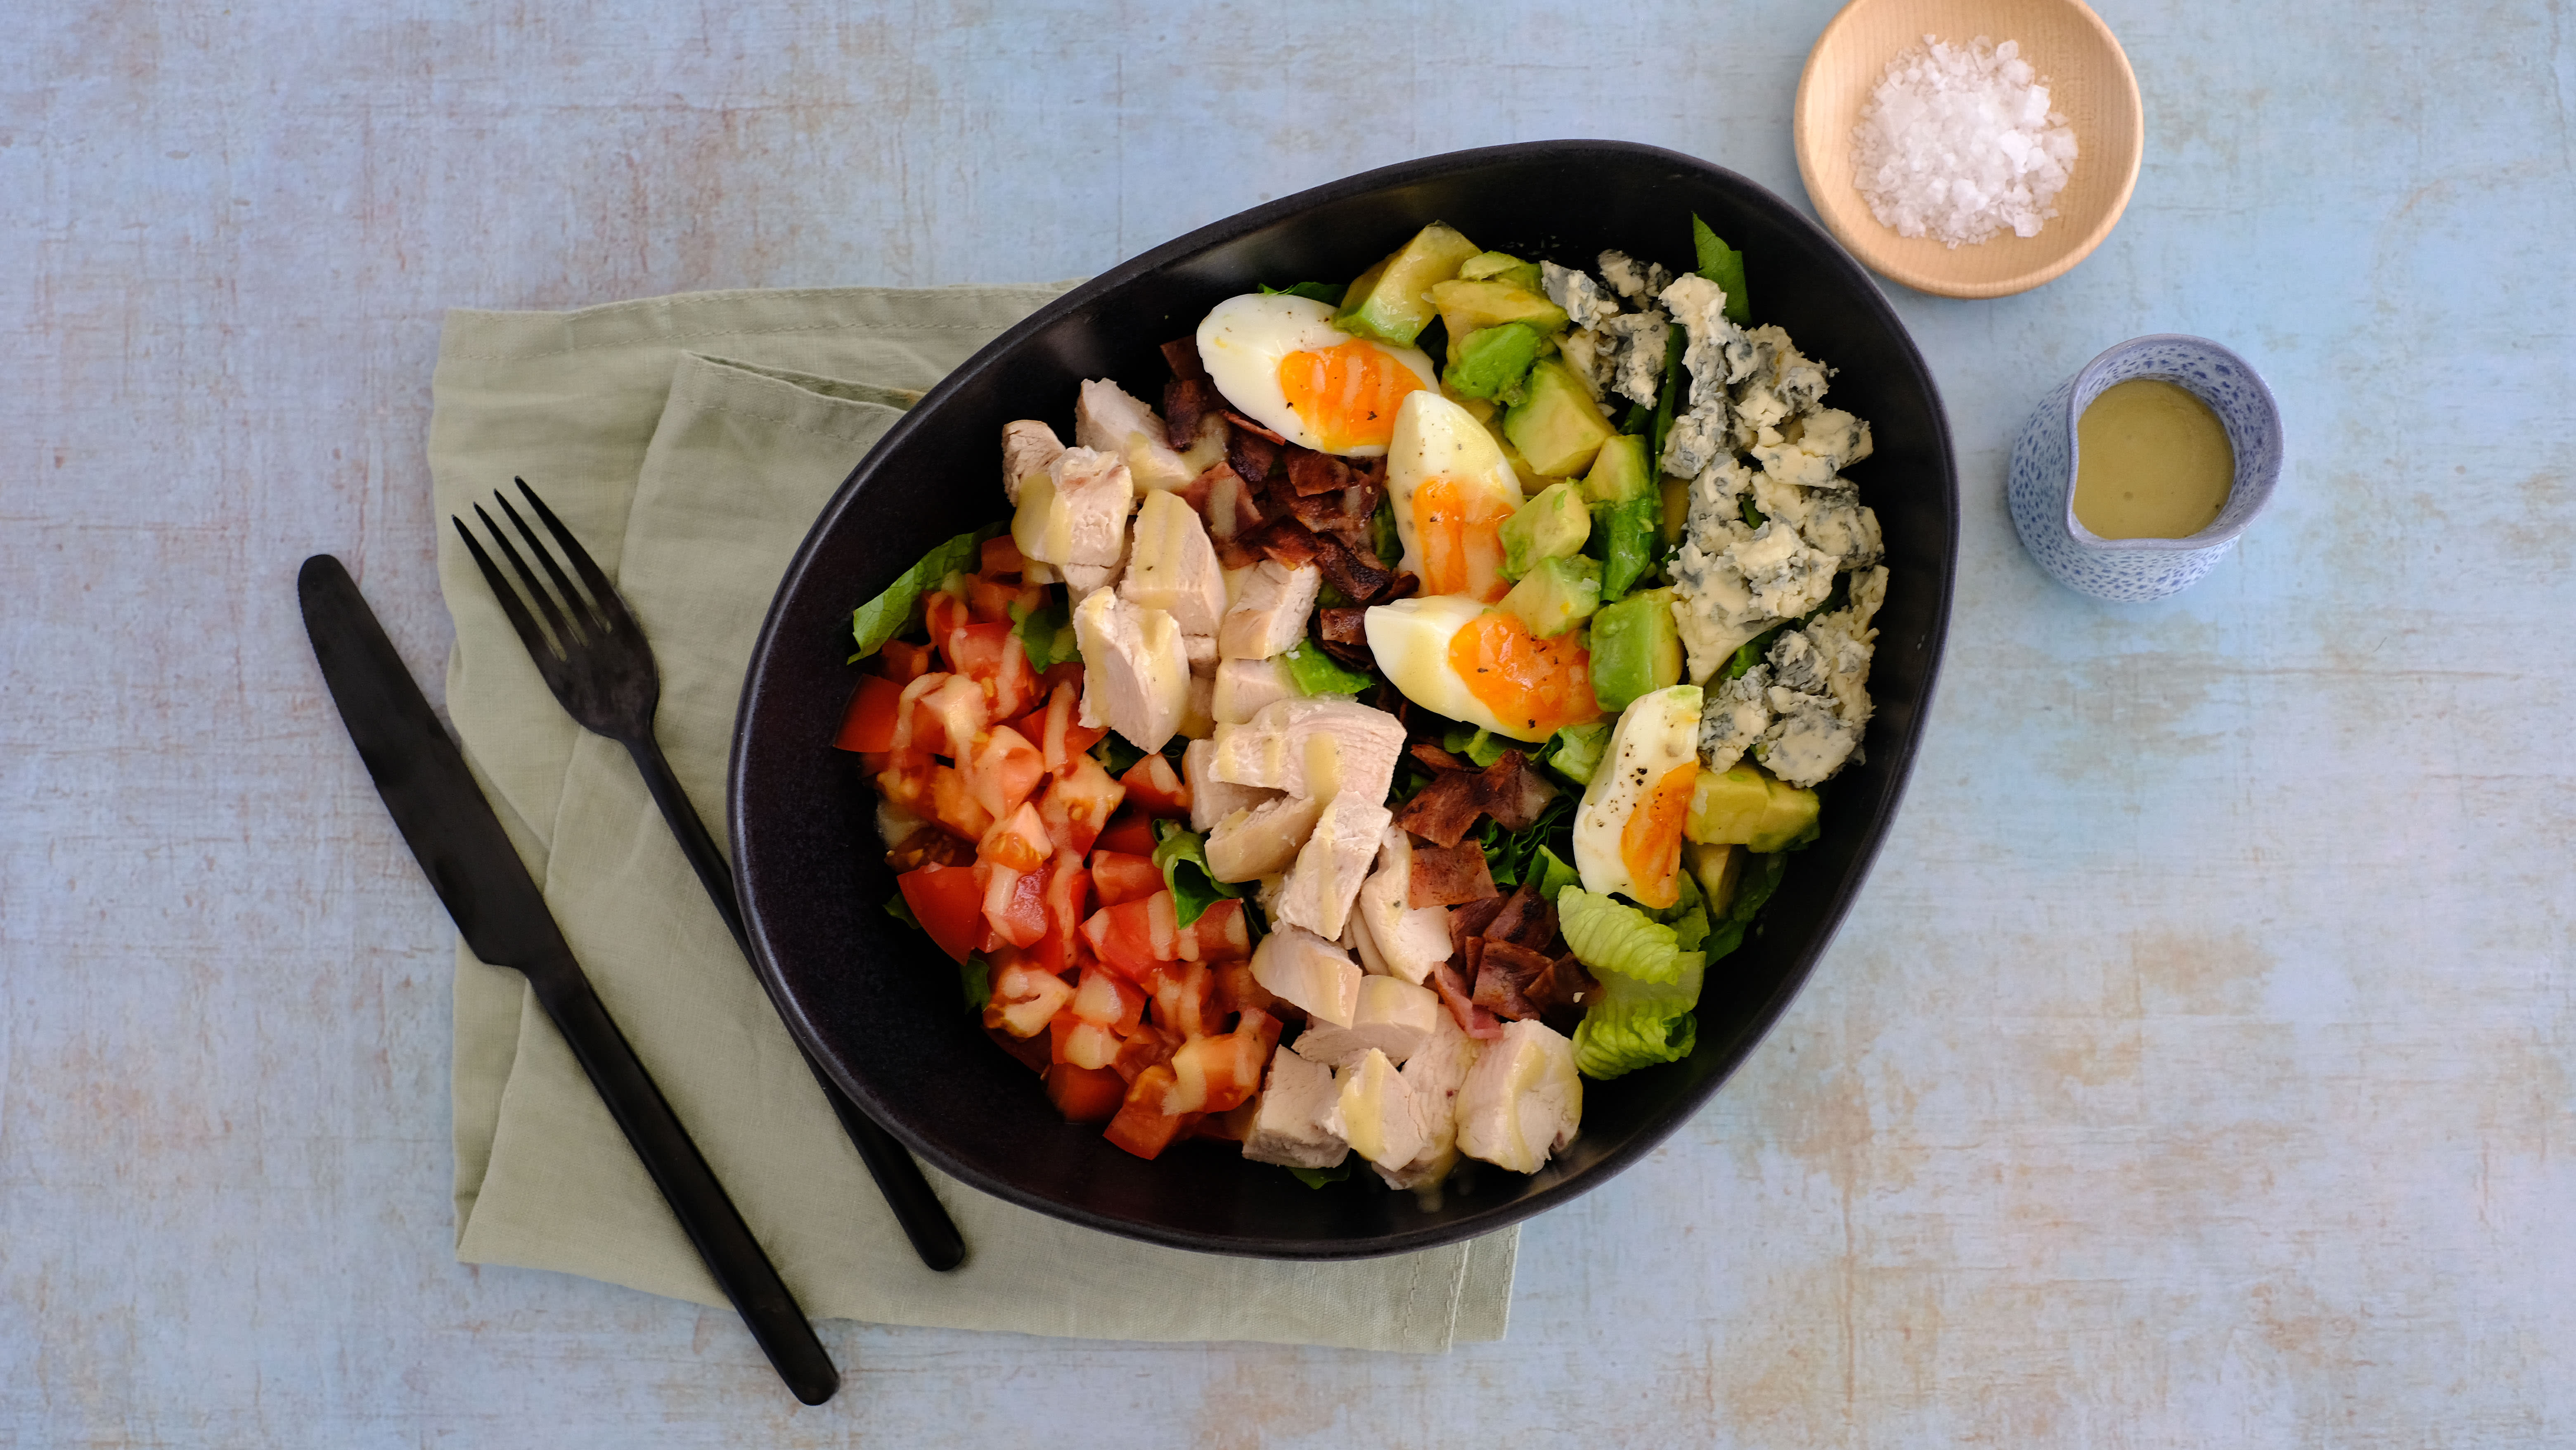 Chicken Cobb Salad with Blue Cheese and Mustard Vinaigrette